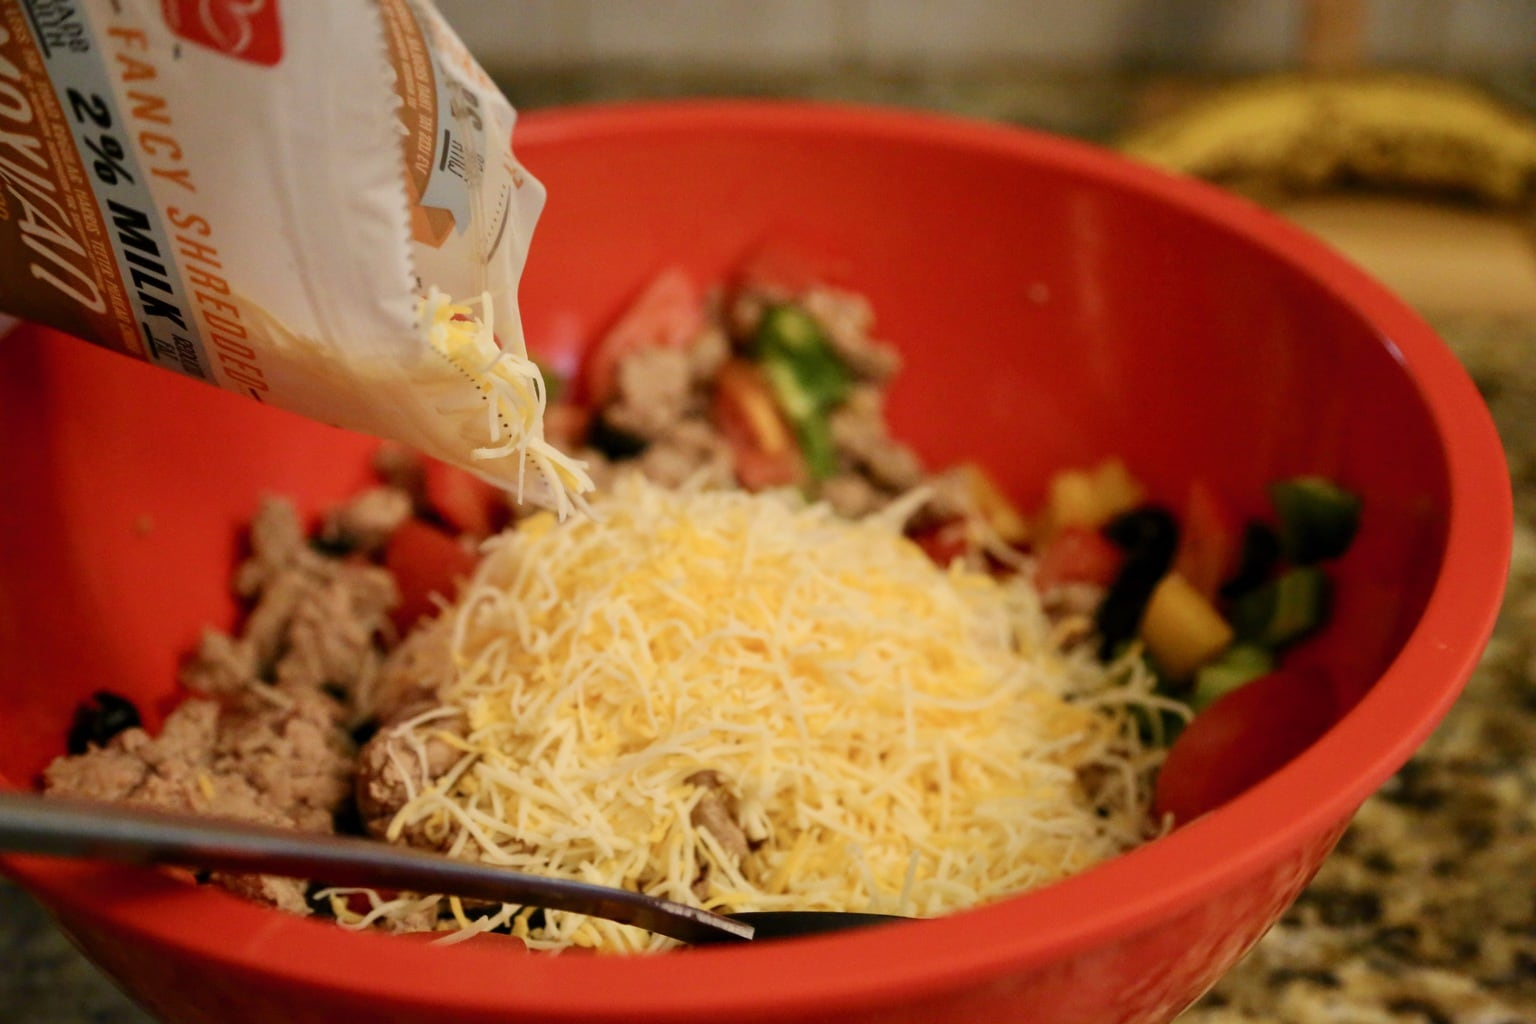 child pouring cheese into taco salad bowl